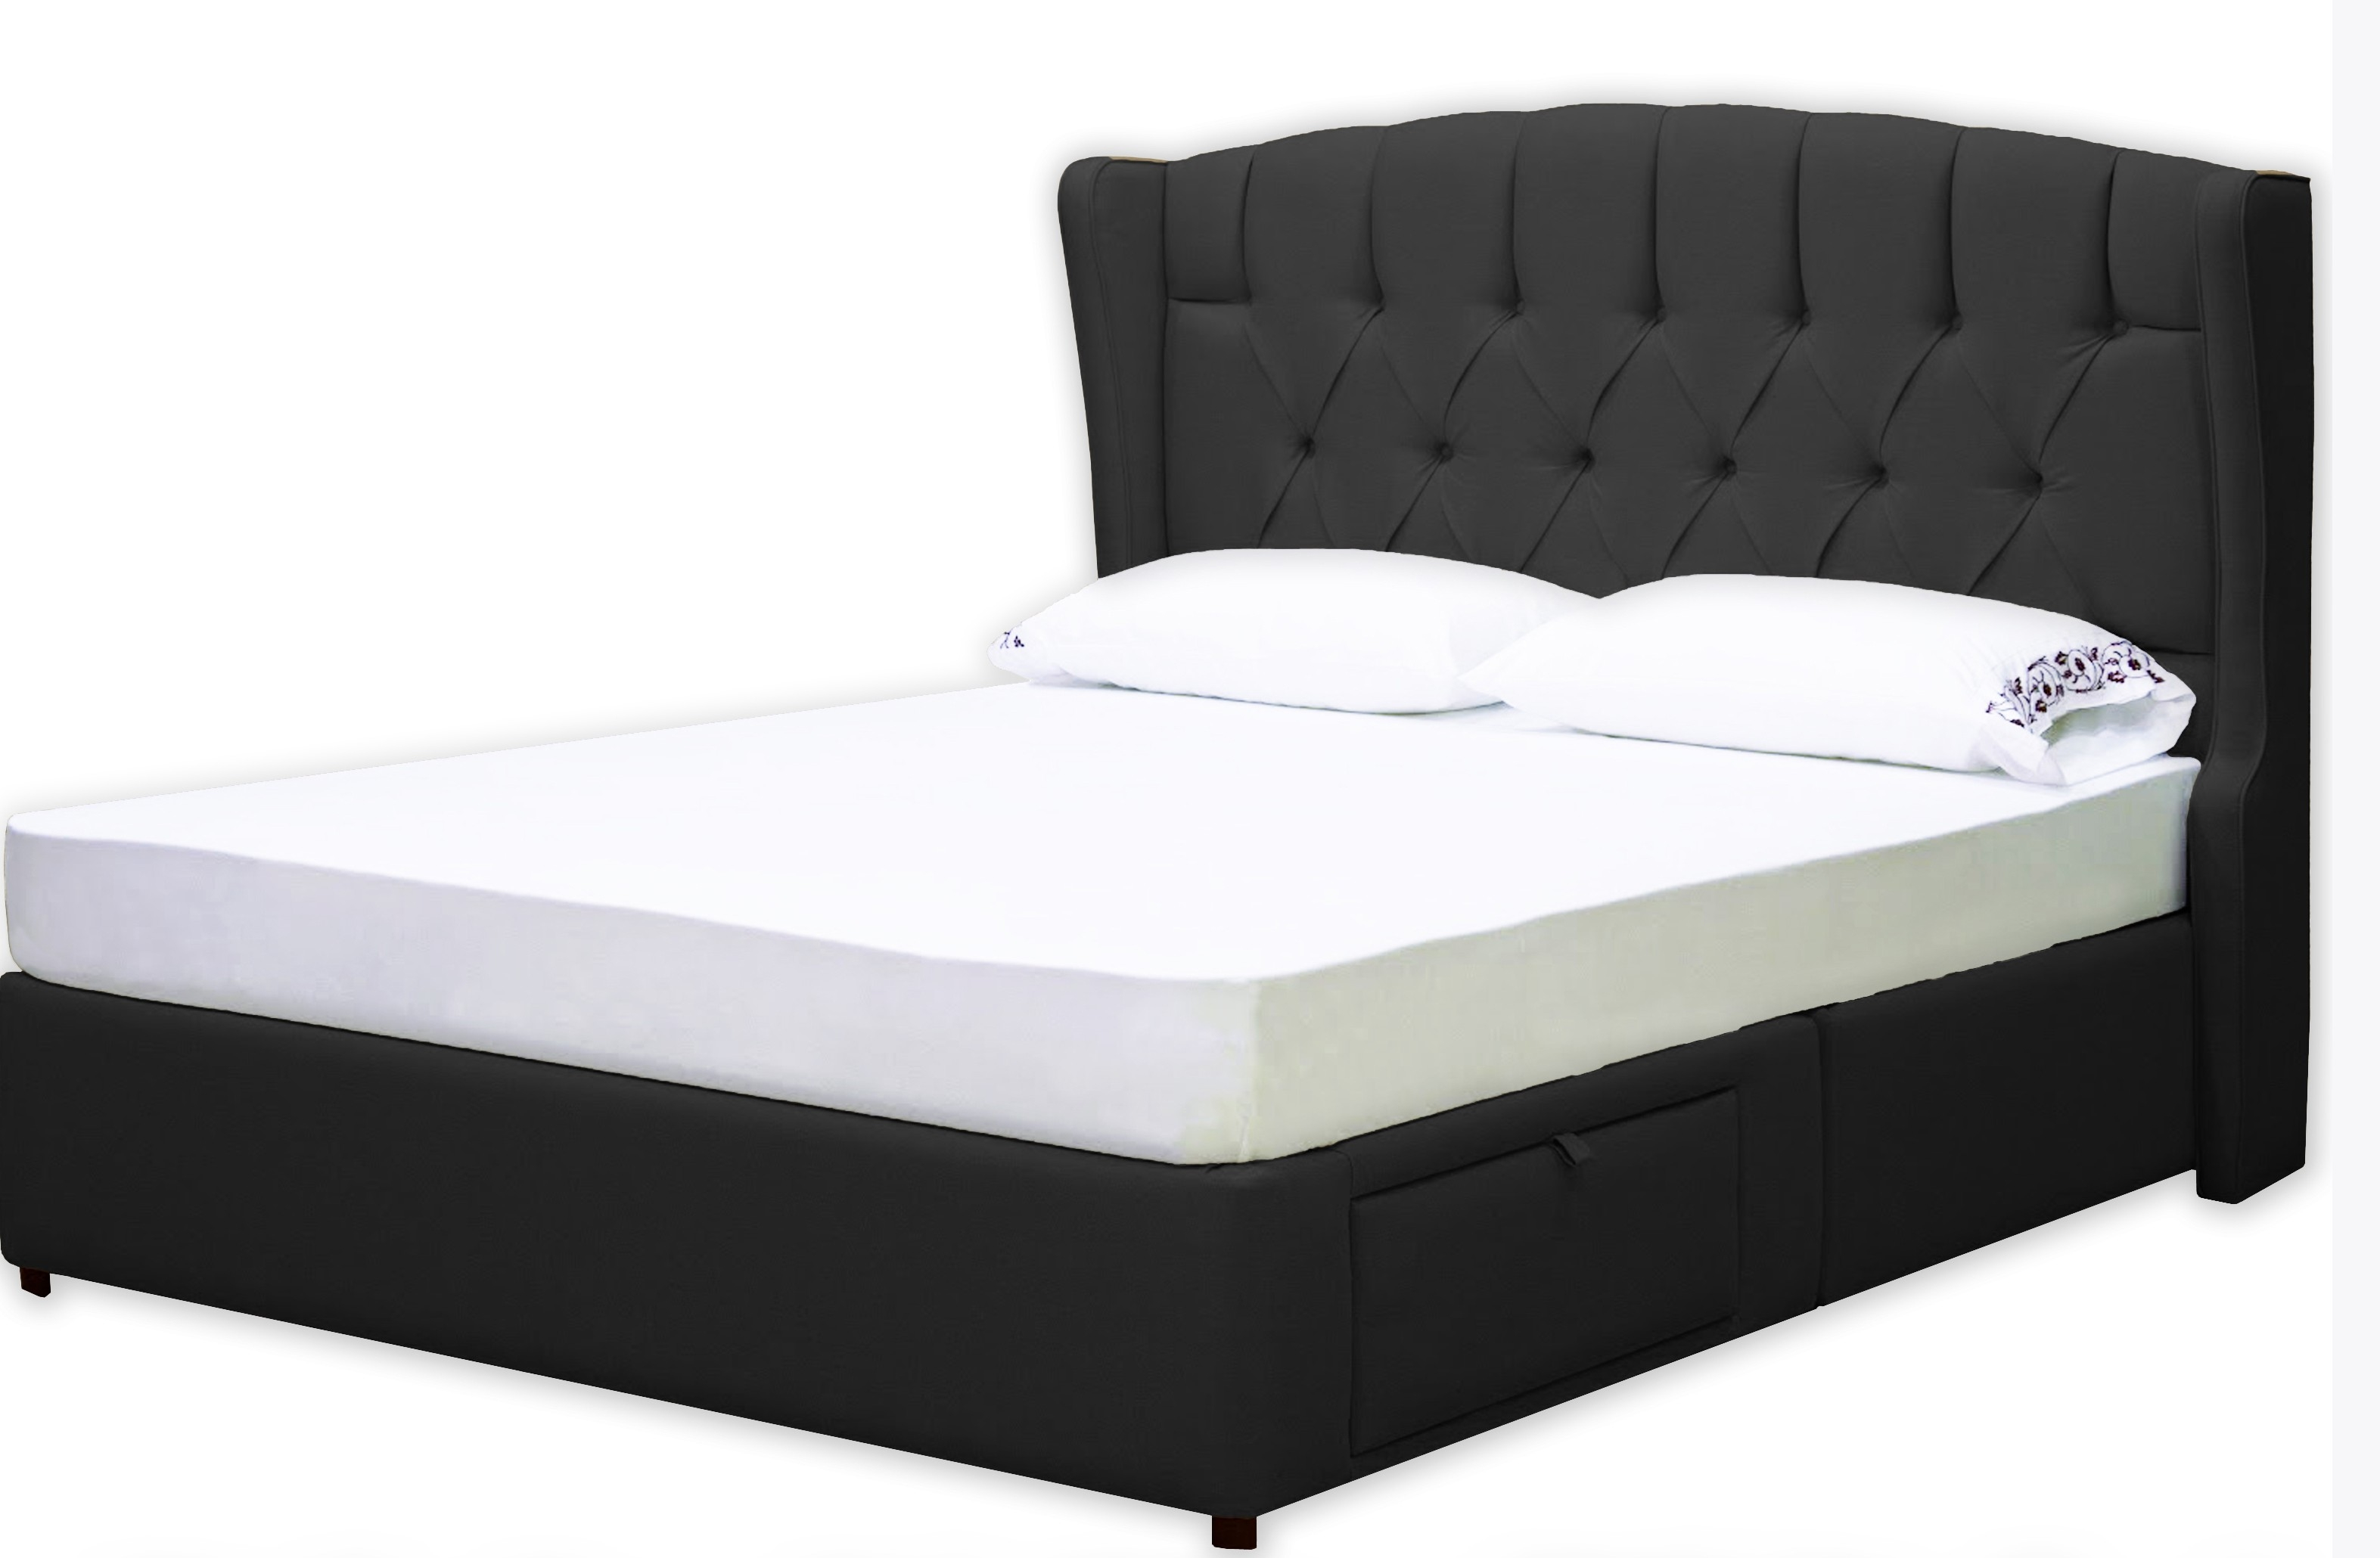 Queen Bed Frame With Headboard And Footboard Hooks